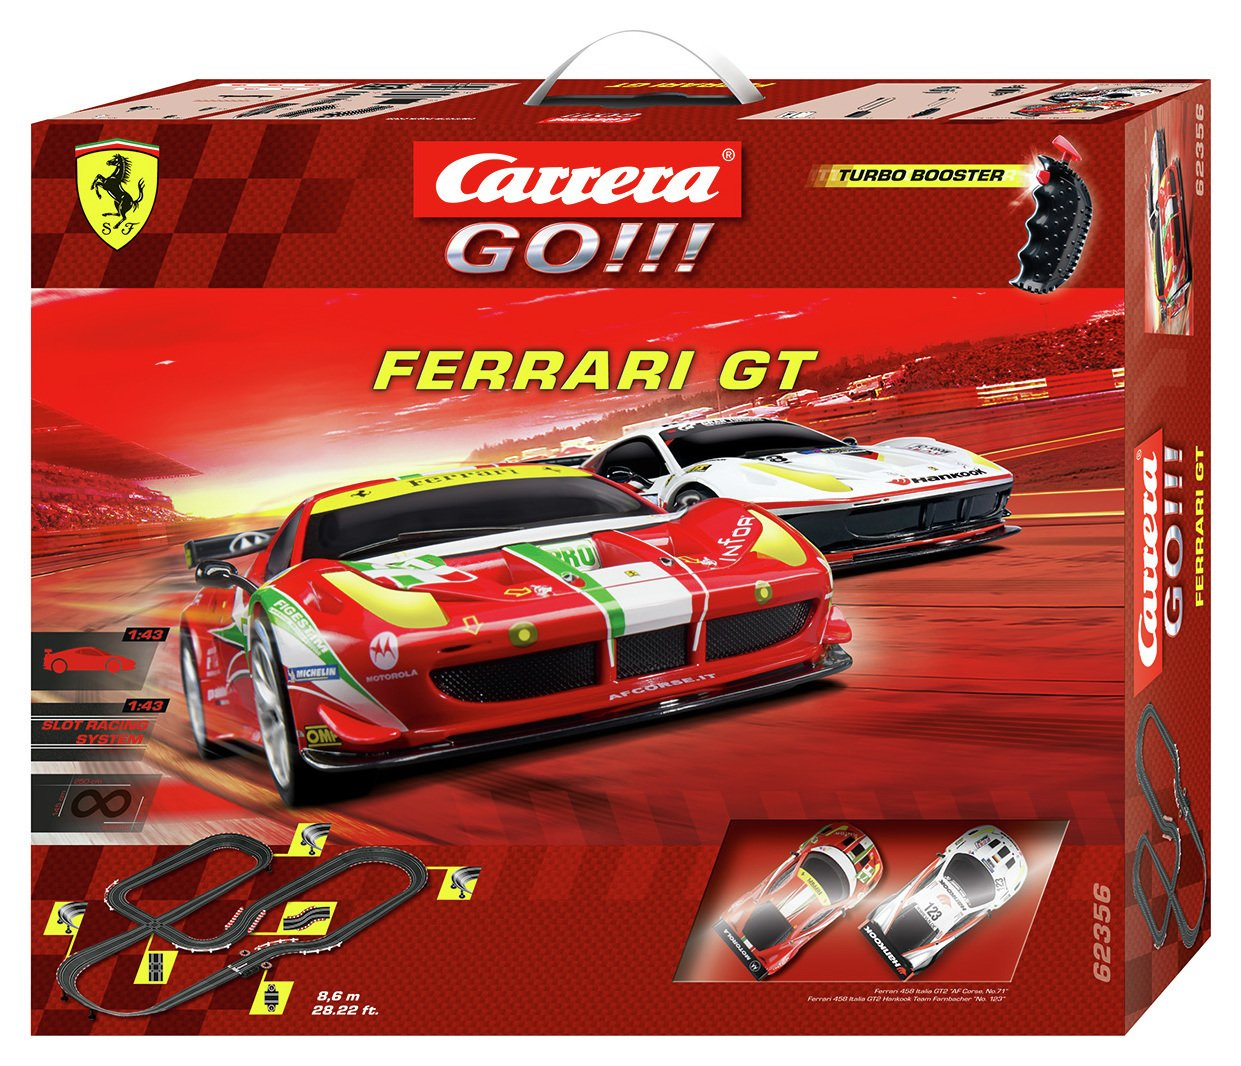 Image of Ferrari GT 8.6m Slot Racing Set.